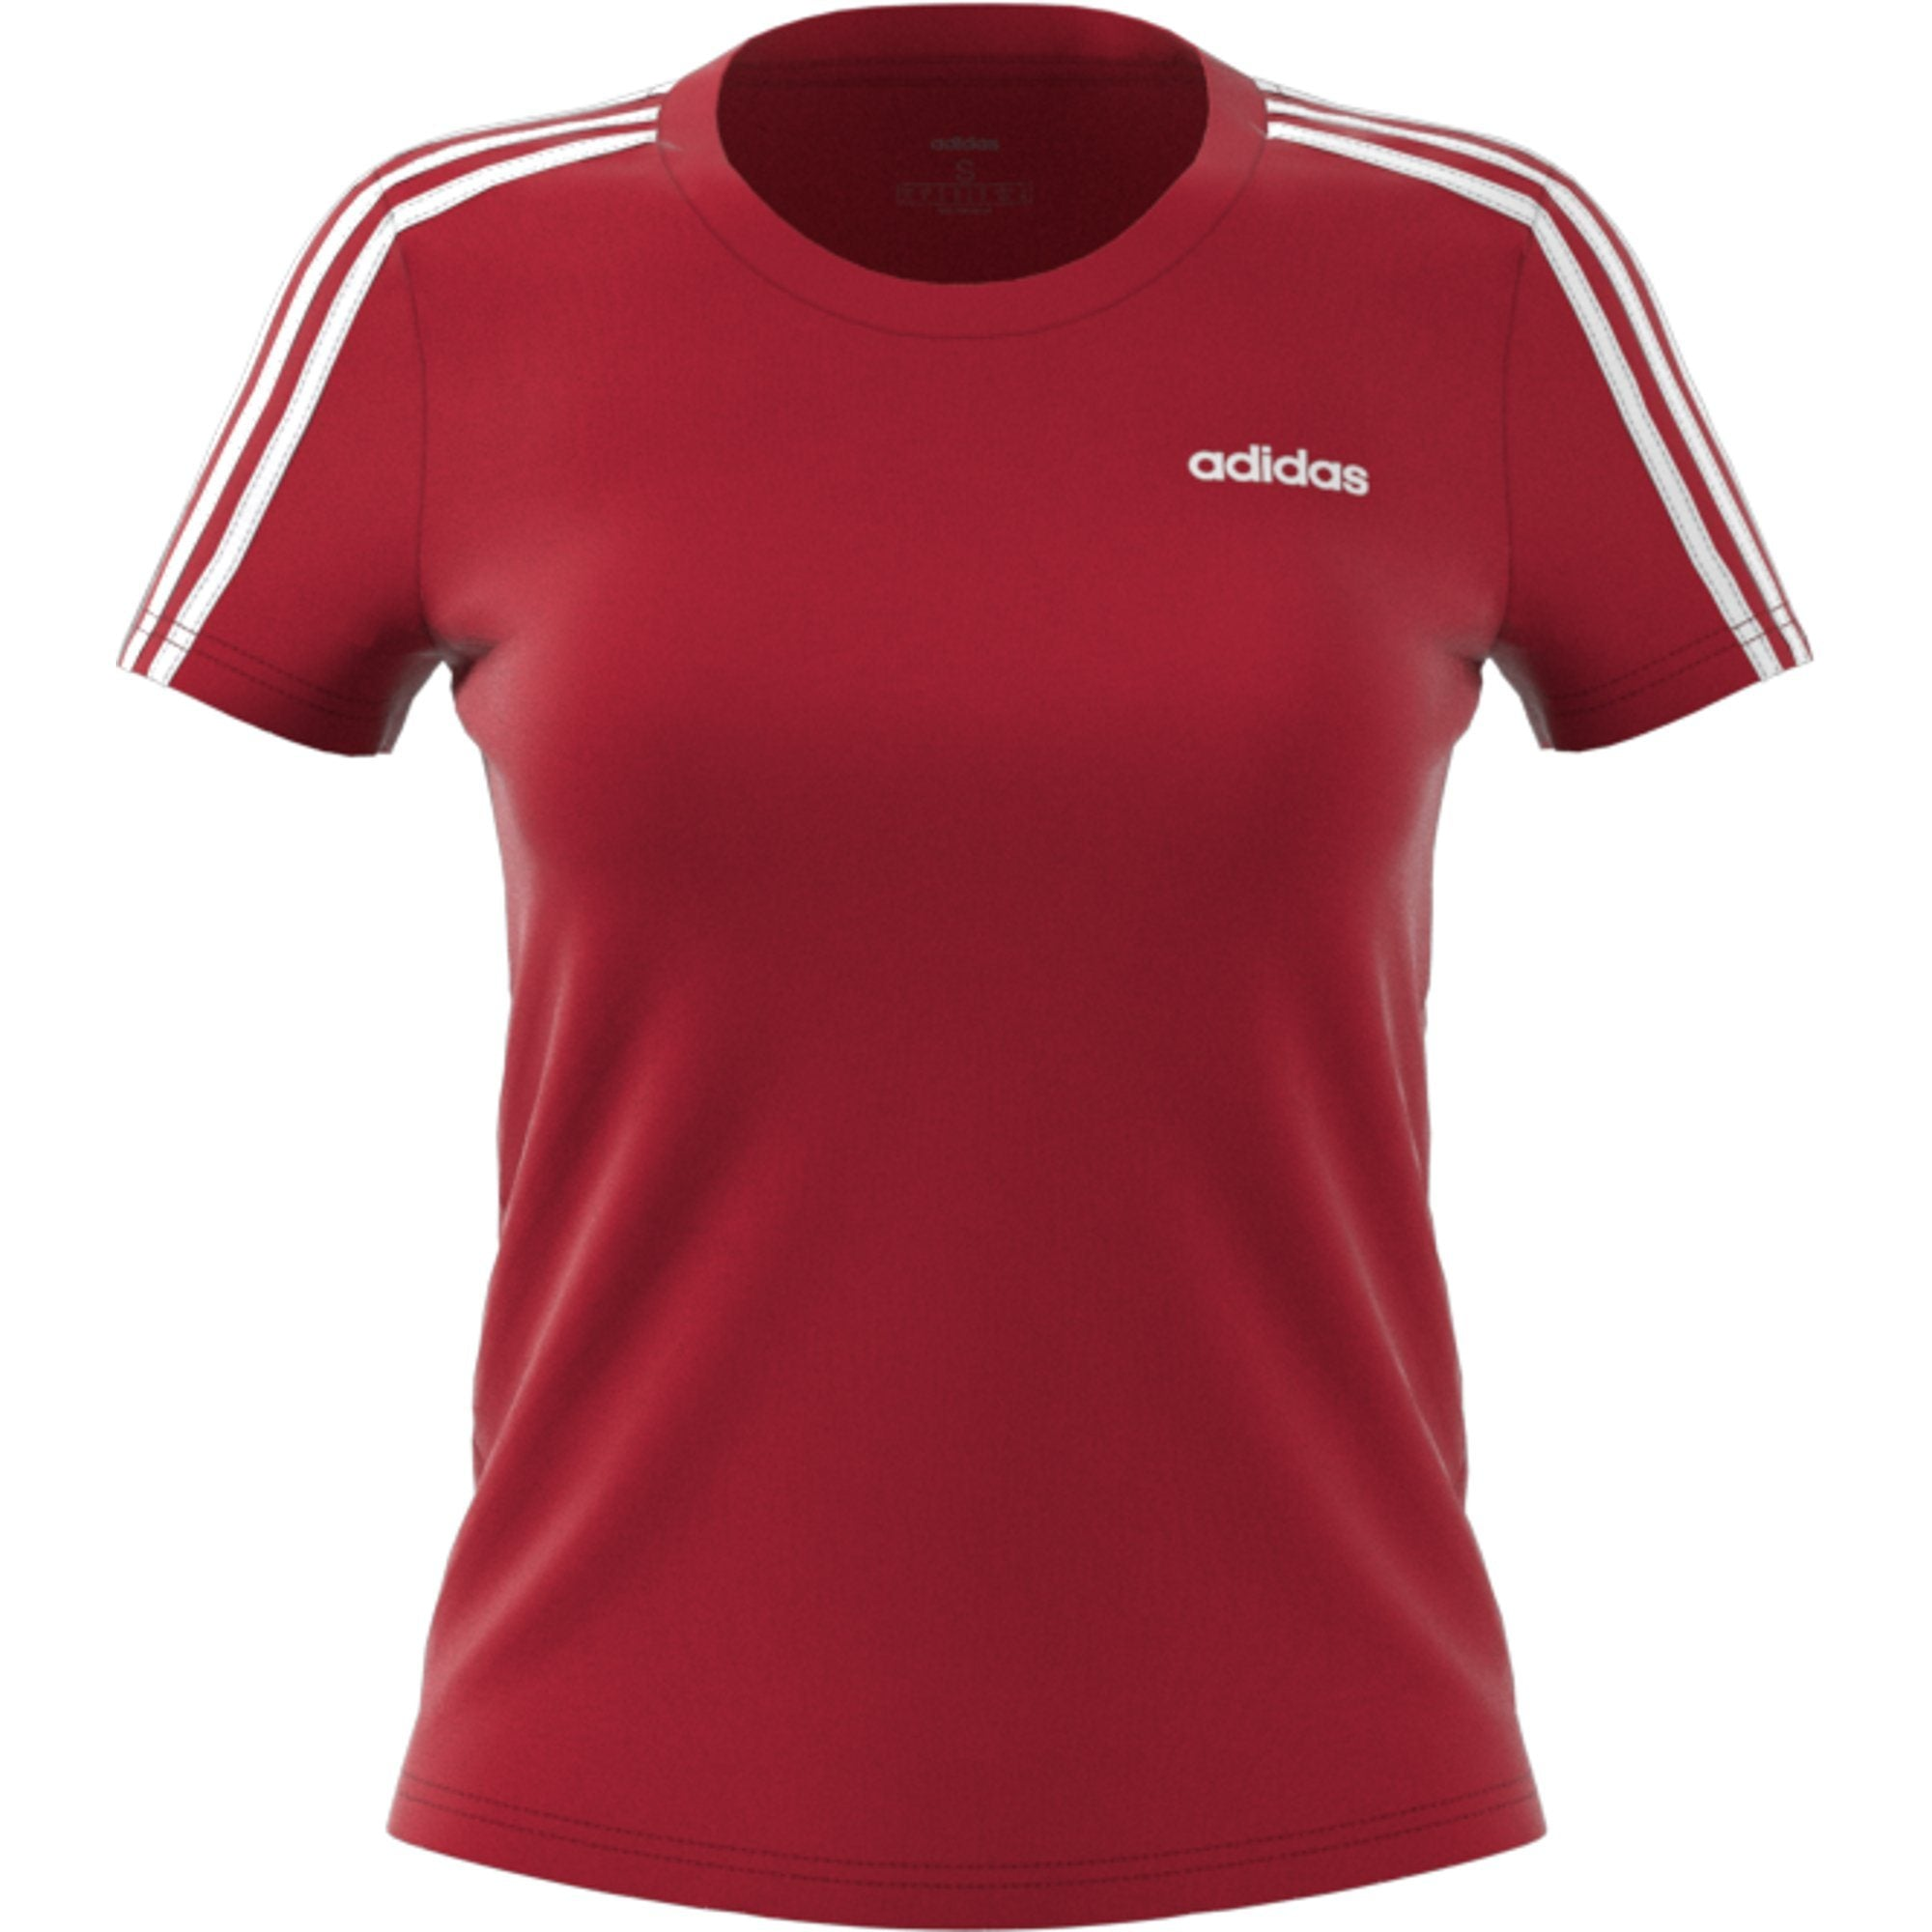 Adidas Womens Essentials 3-Stripes Tee - active maroon-white Womens Apparel Adidas